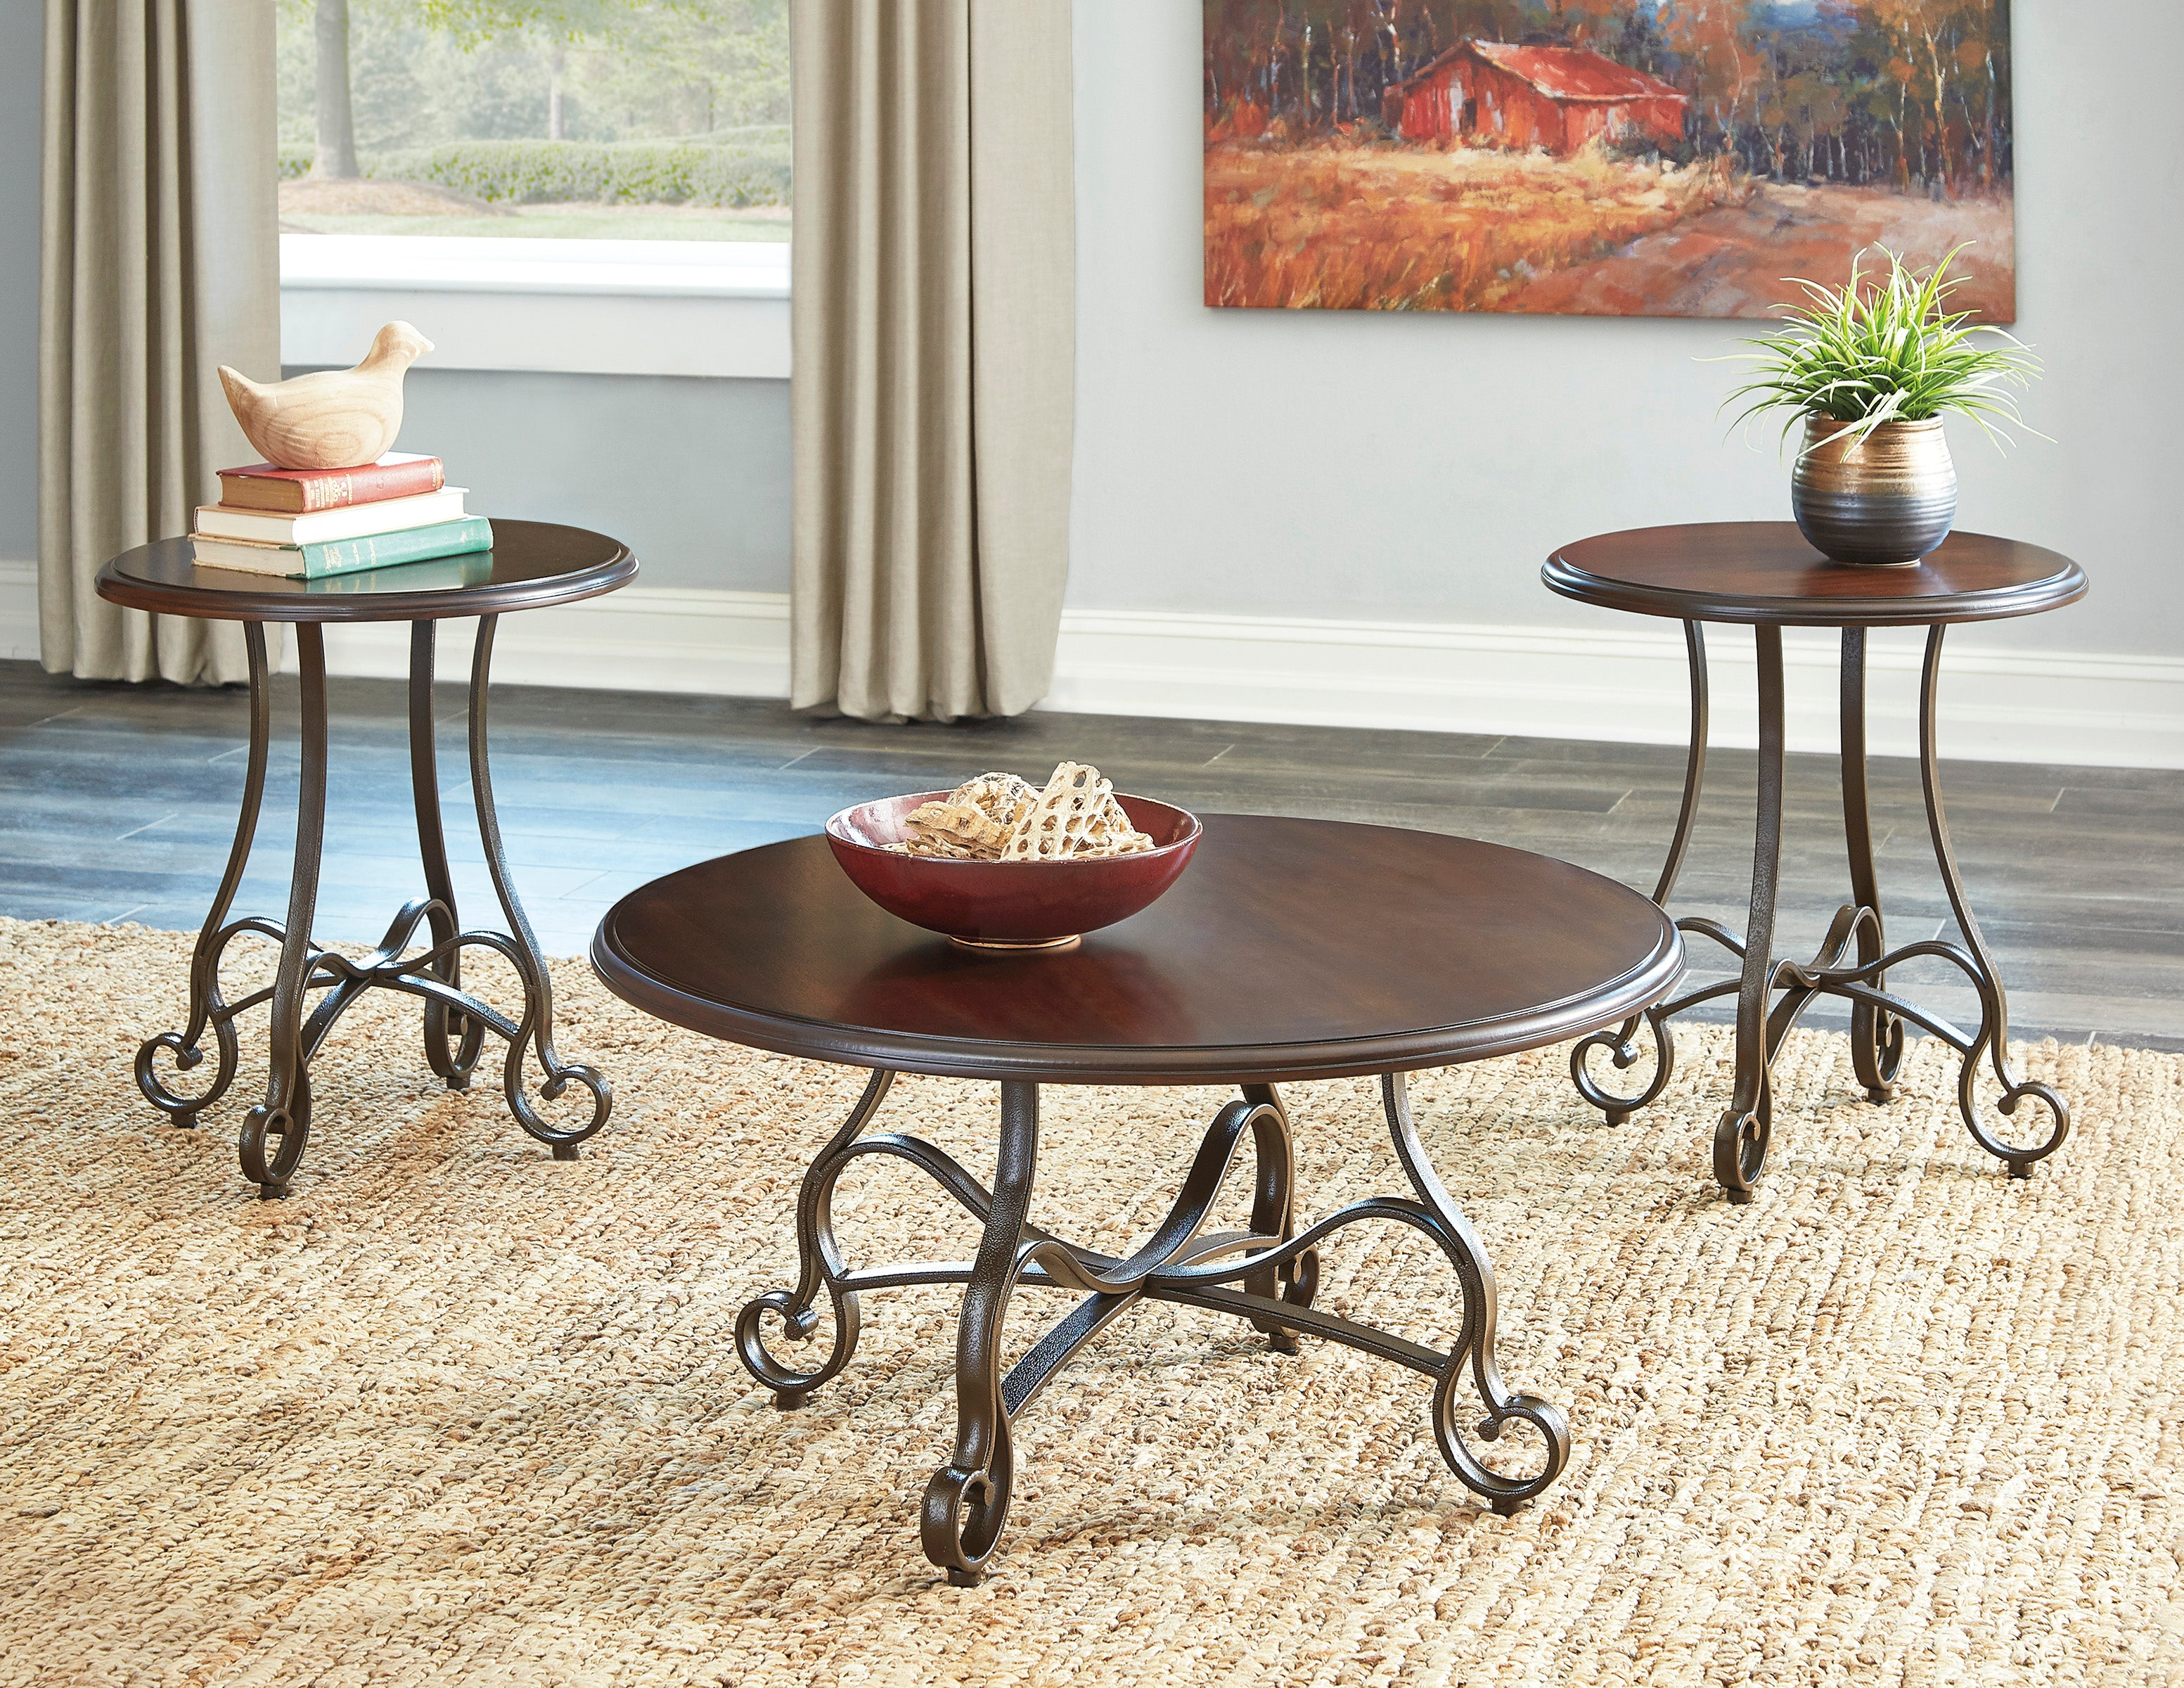 T335-13 Carshaw - Lifestyle Furniture